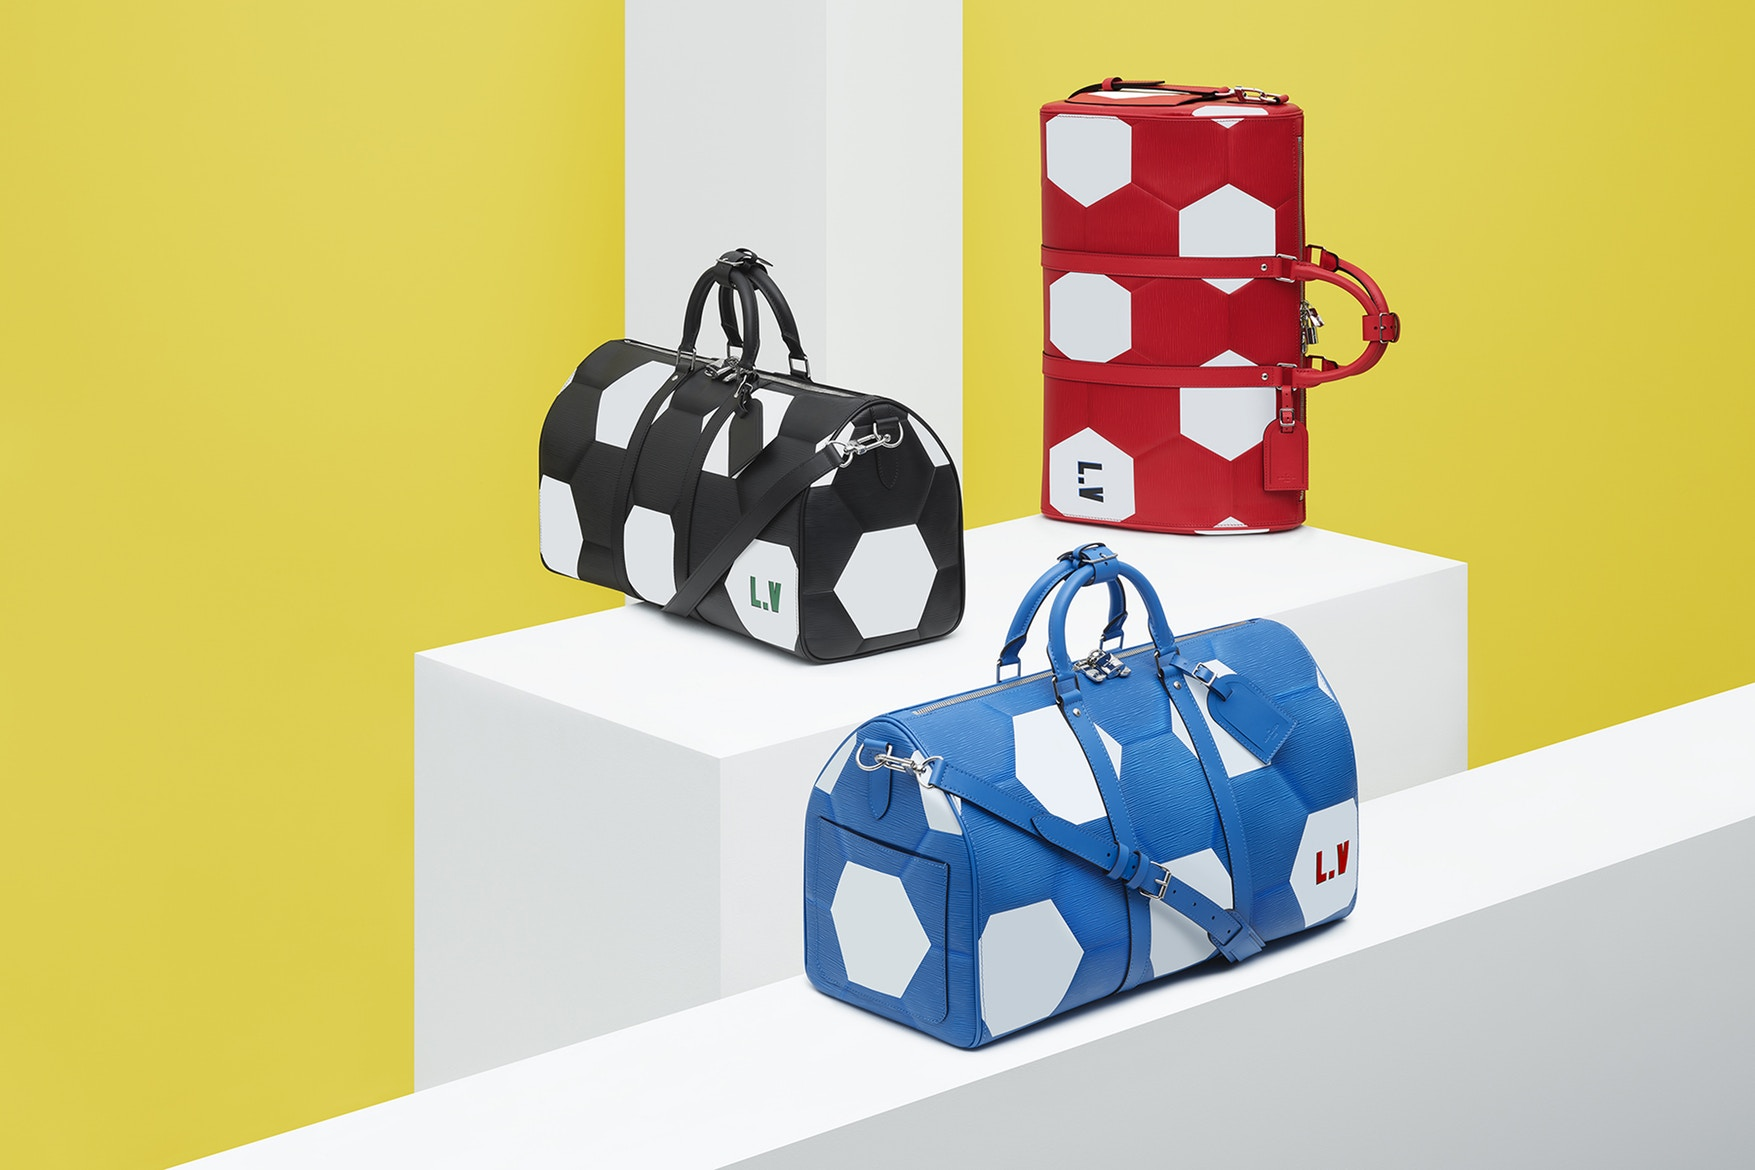 Louis Vuitton And FIFA Collaborate On World Cup 2018 Russia Accessories Collection